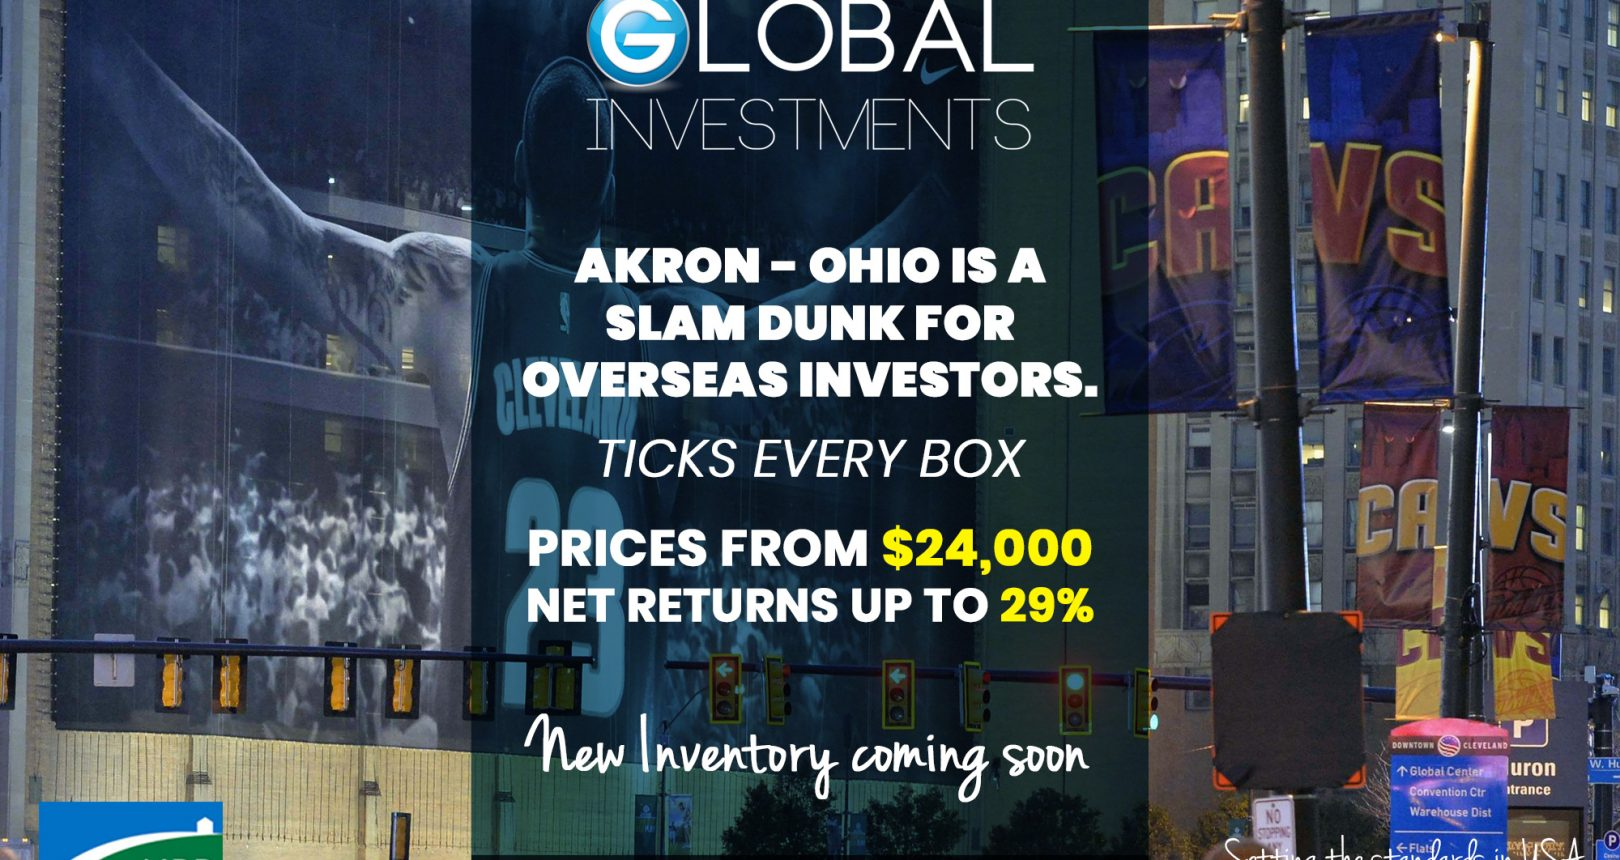 ARKON OHIO A SLAM DUNK FOR INVESTORS